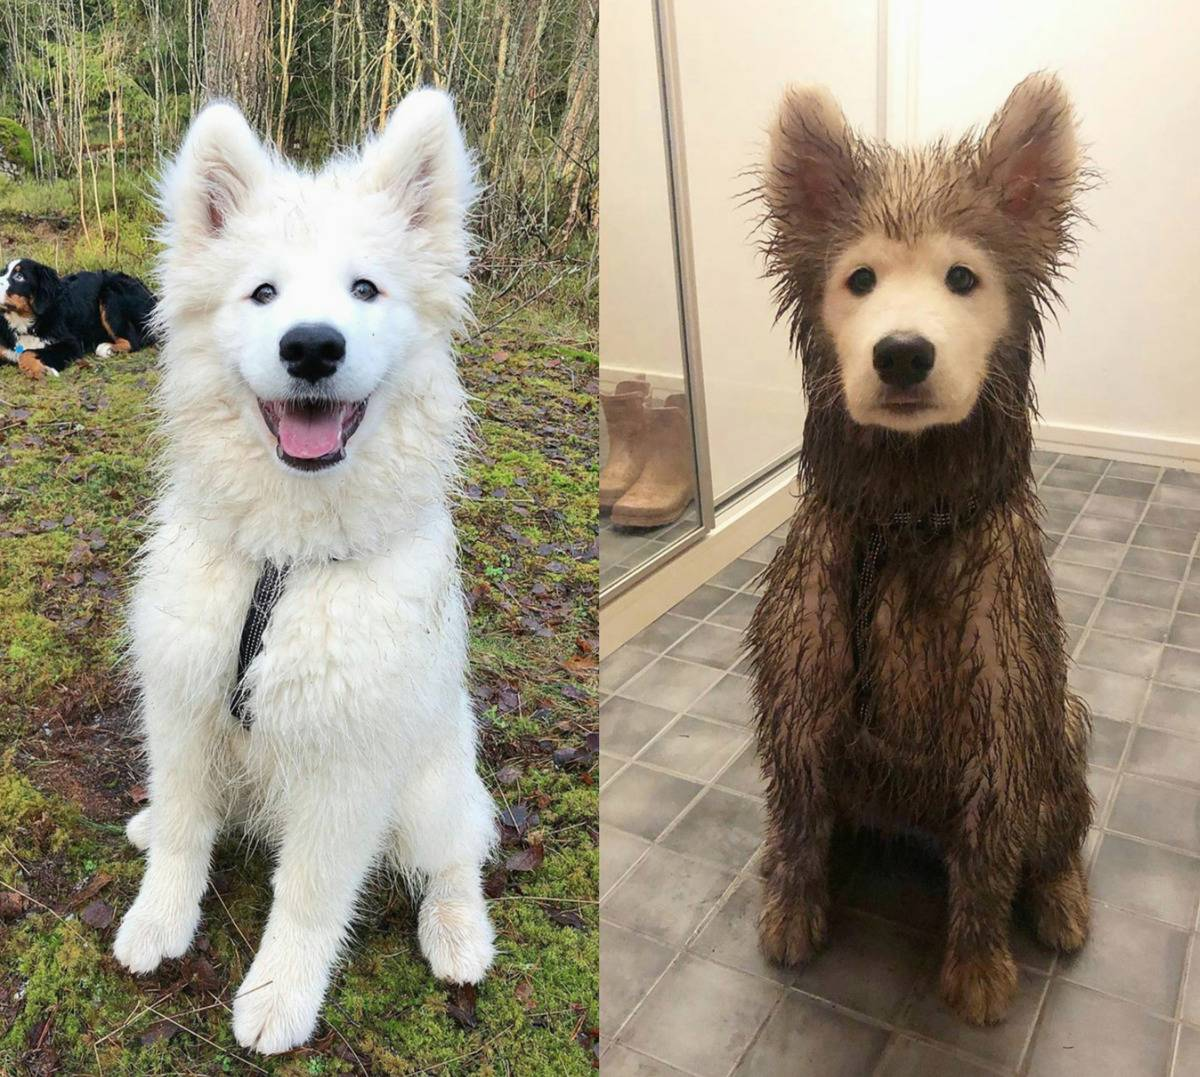 dog seen clean and white vs. brown and dirty